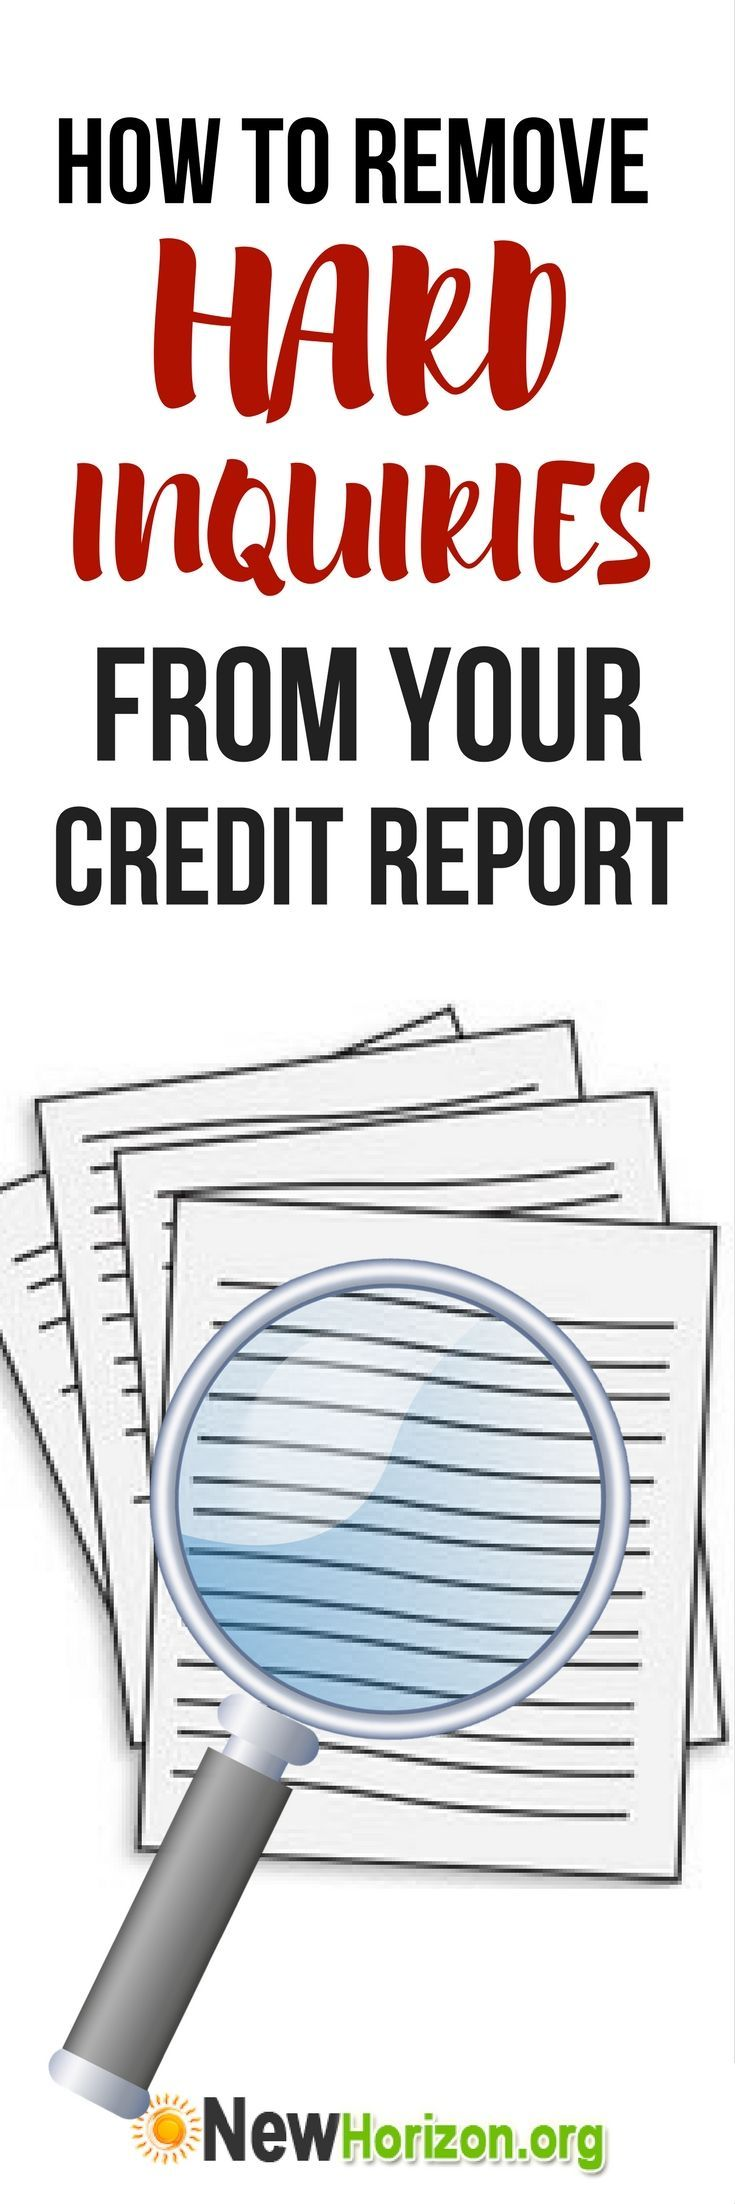 how to remove inquiries from credit report sample letter 25 unique credit dispute ideas on free credit 22347 | 2e0064bf20df06836a9efe7aac4a3e36